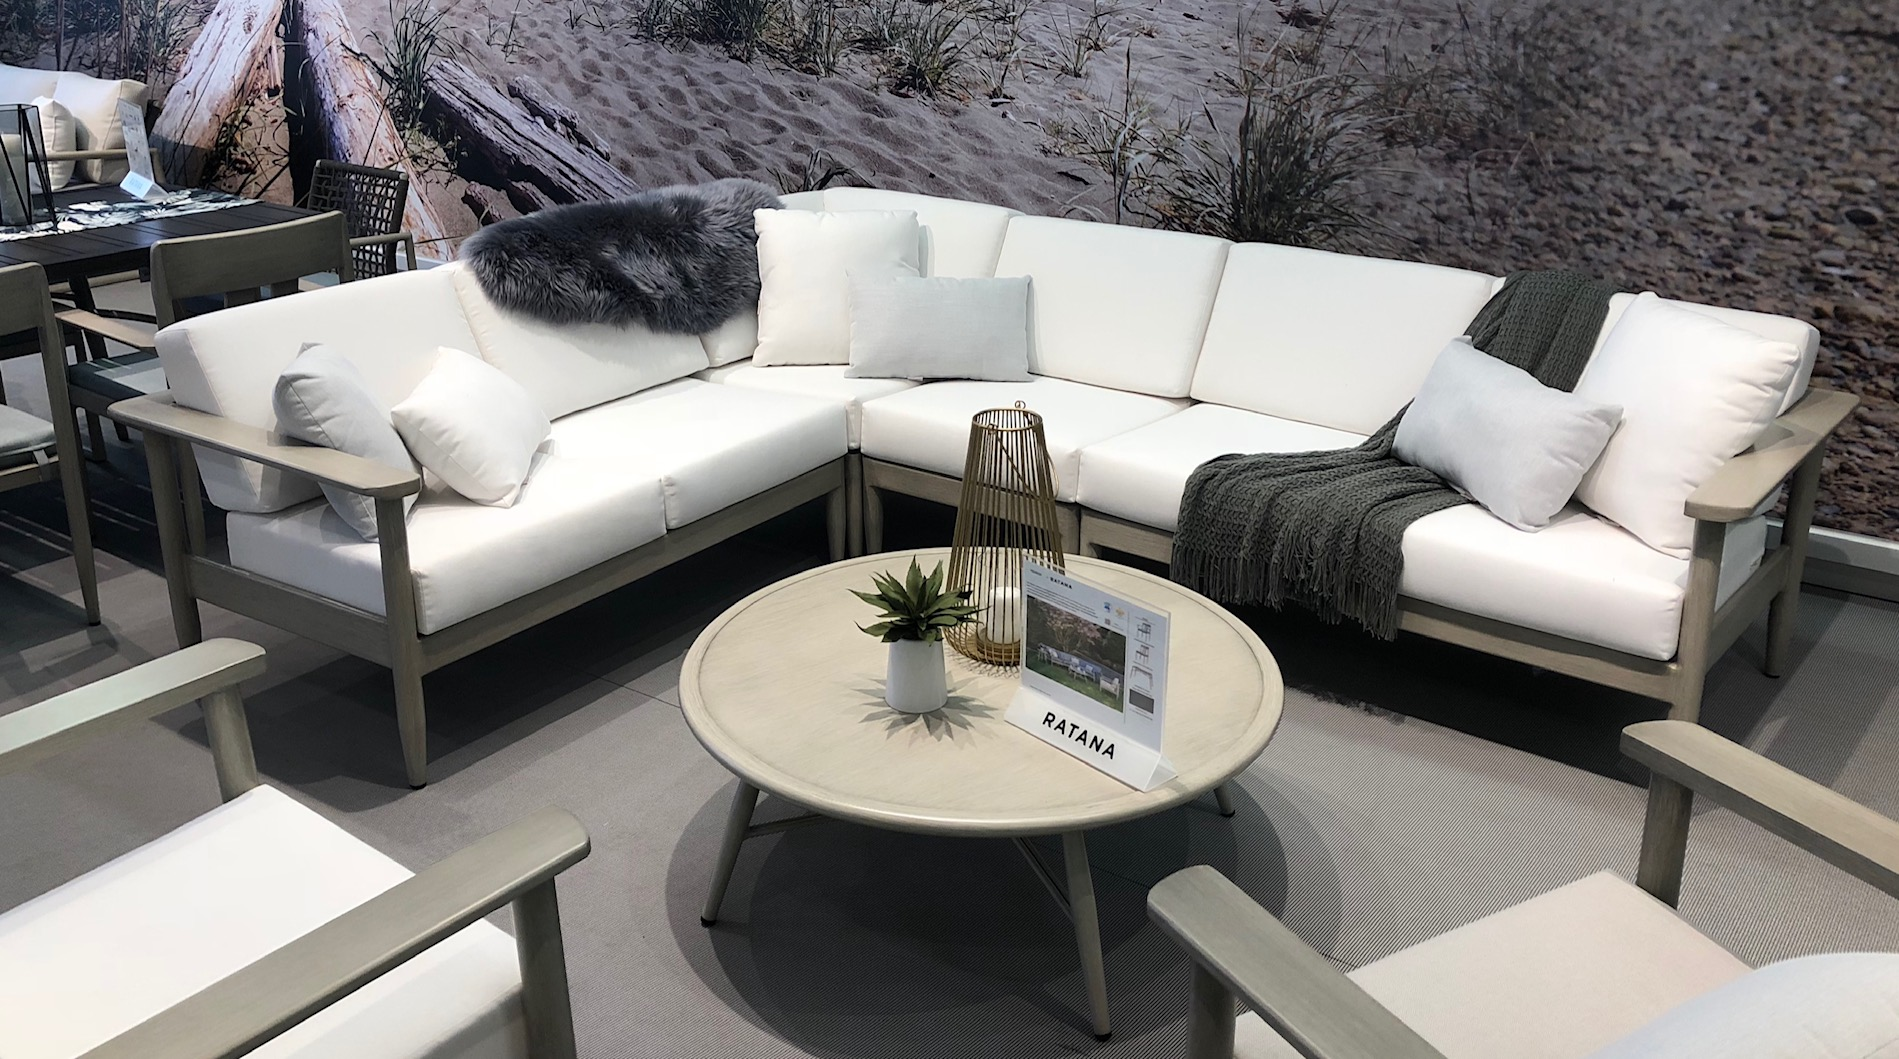 The Polanco sectional by Ratana with a round coffee table and blankets over the cushions.